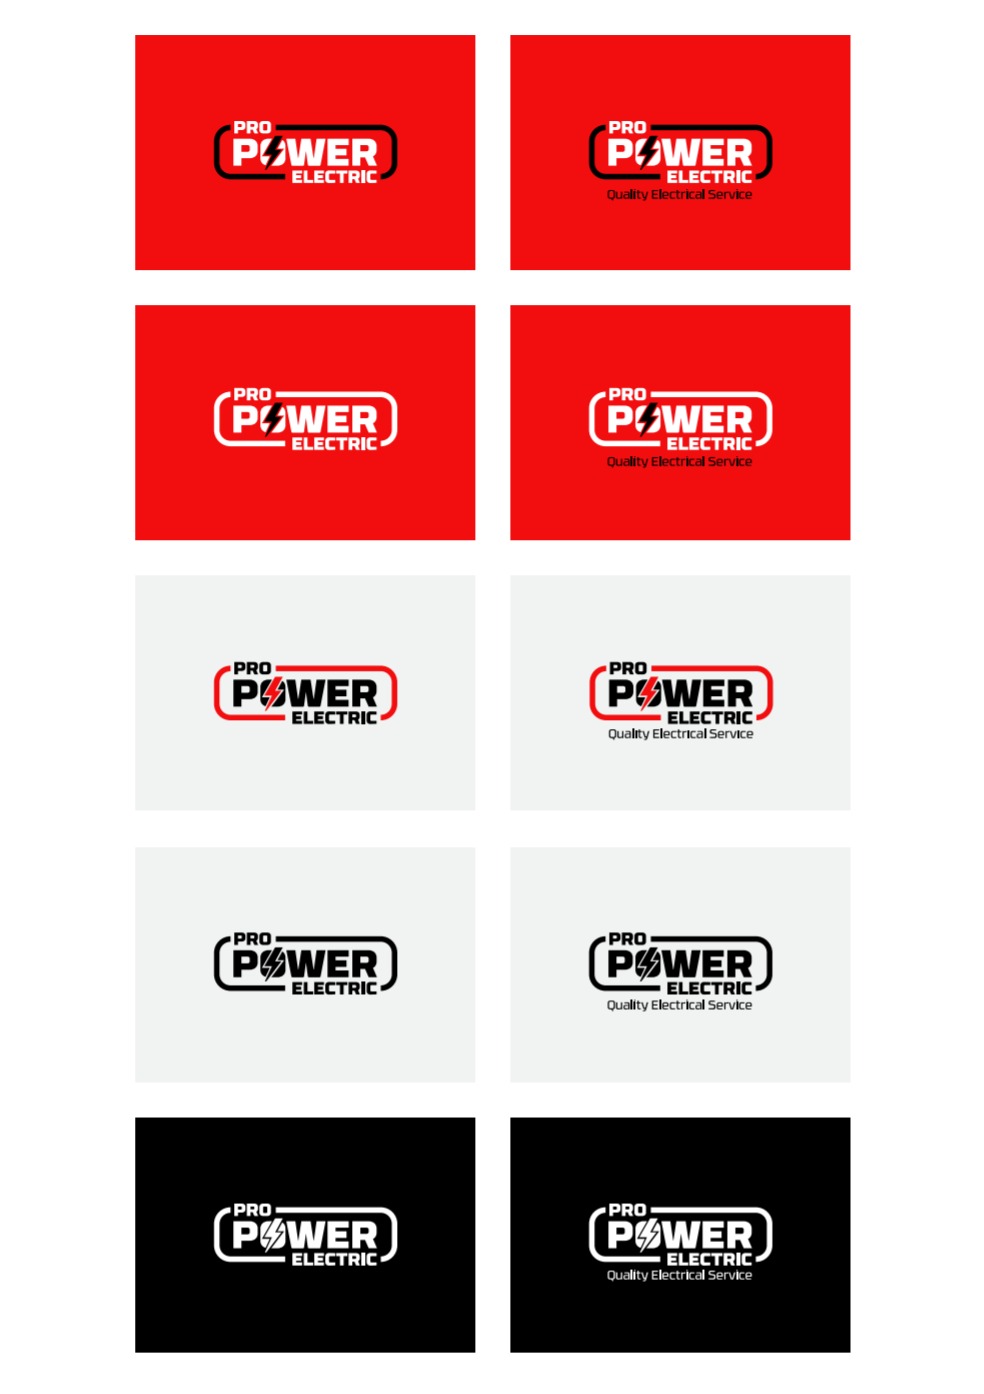 Pro Power Electric Branding